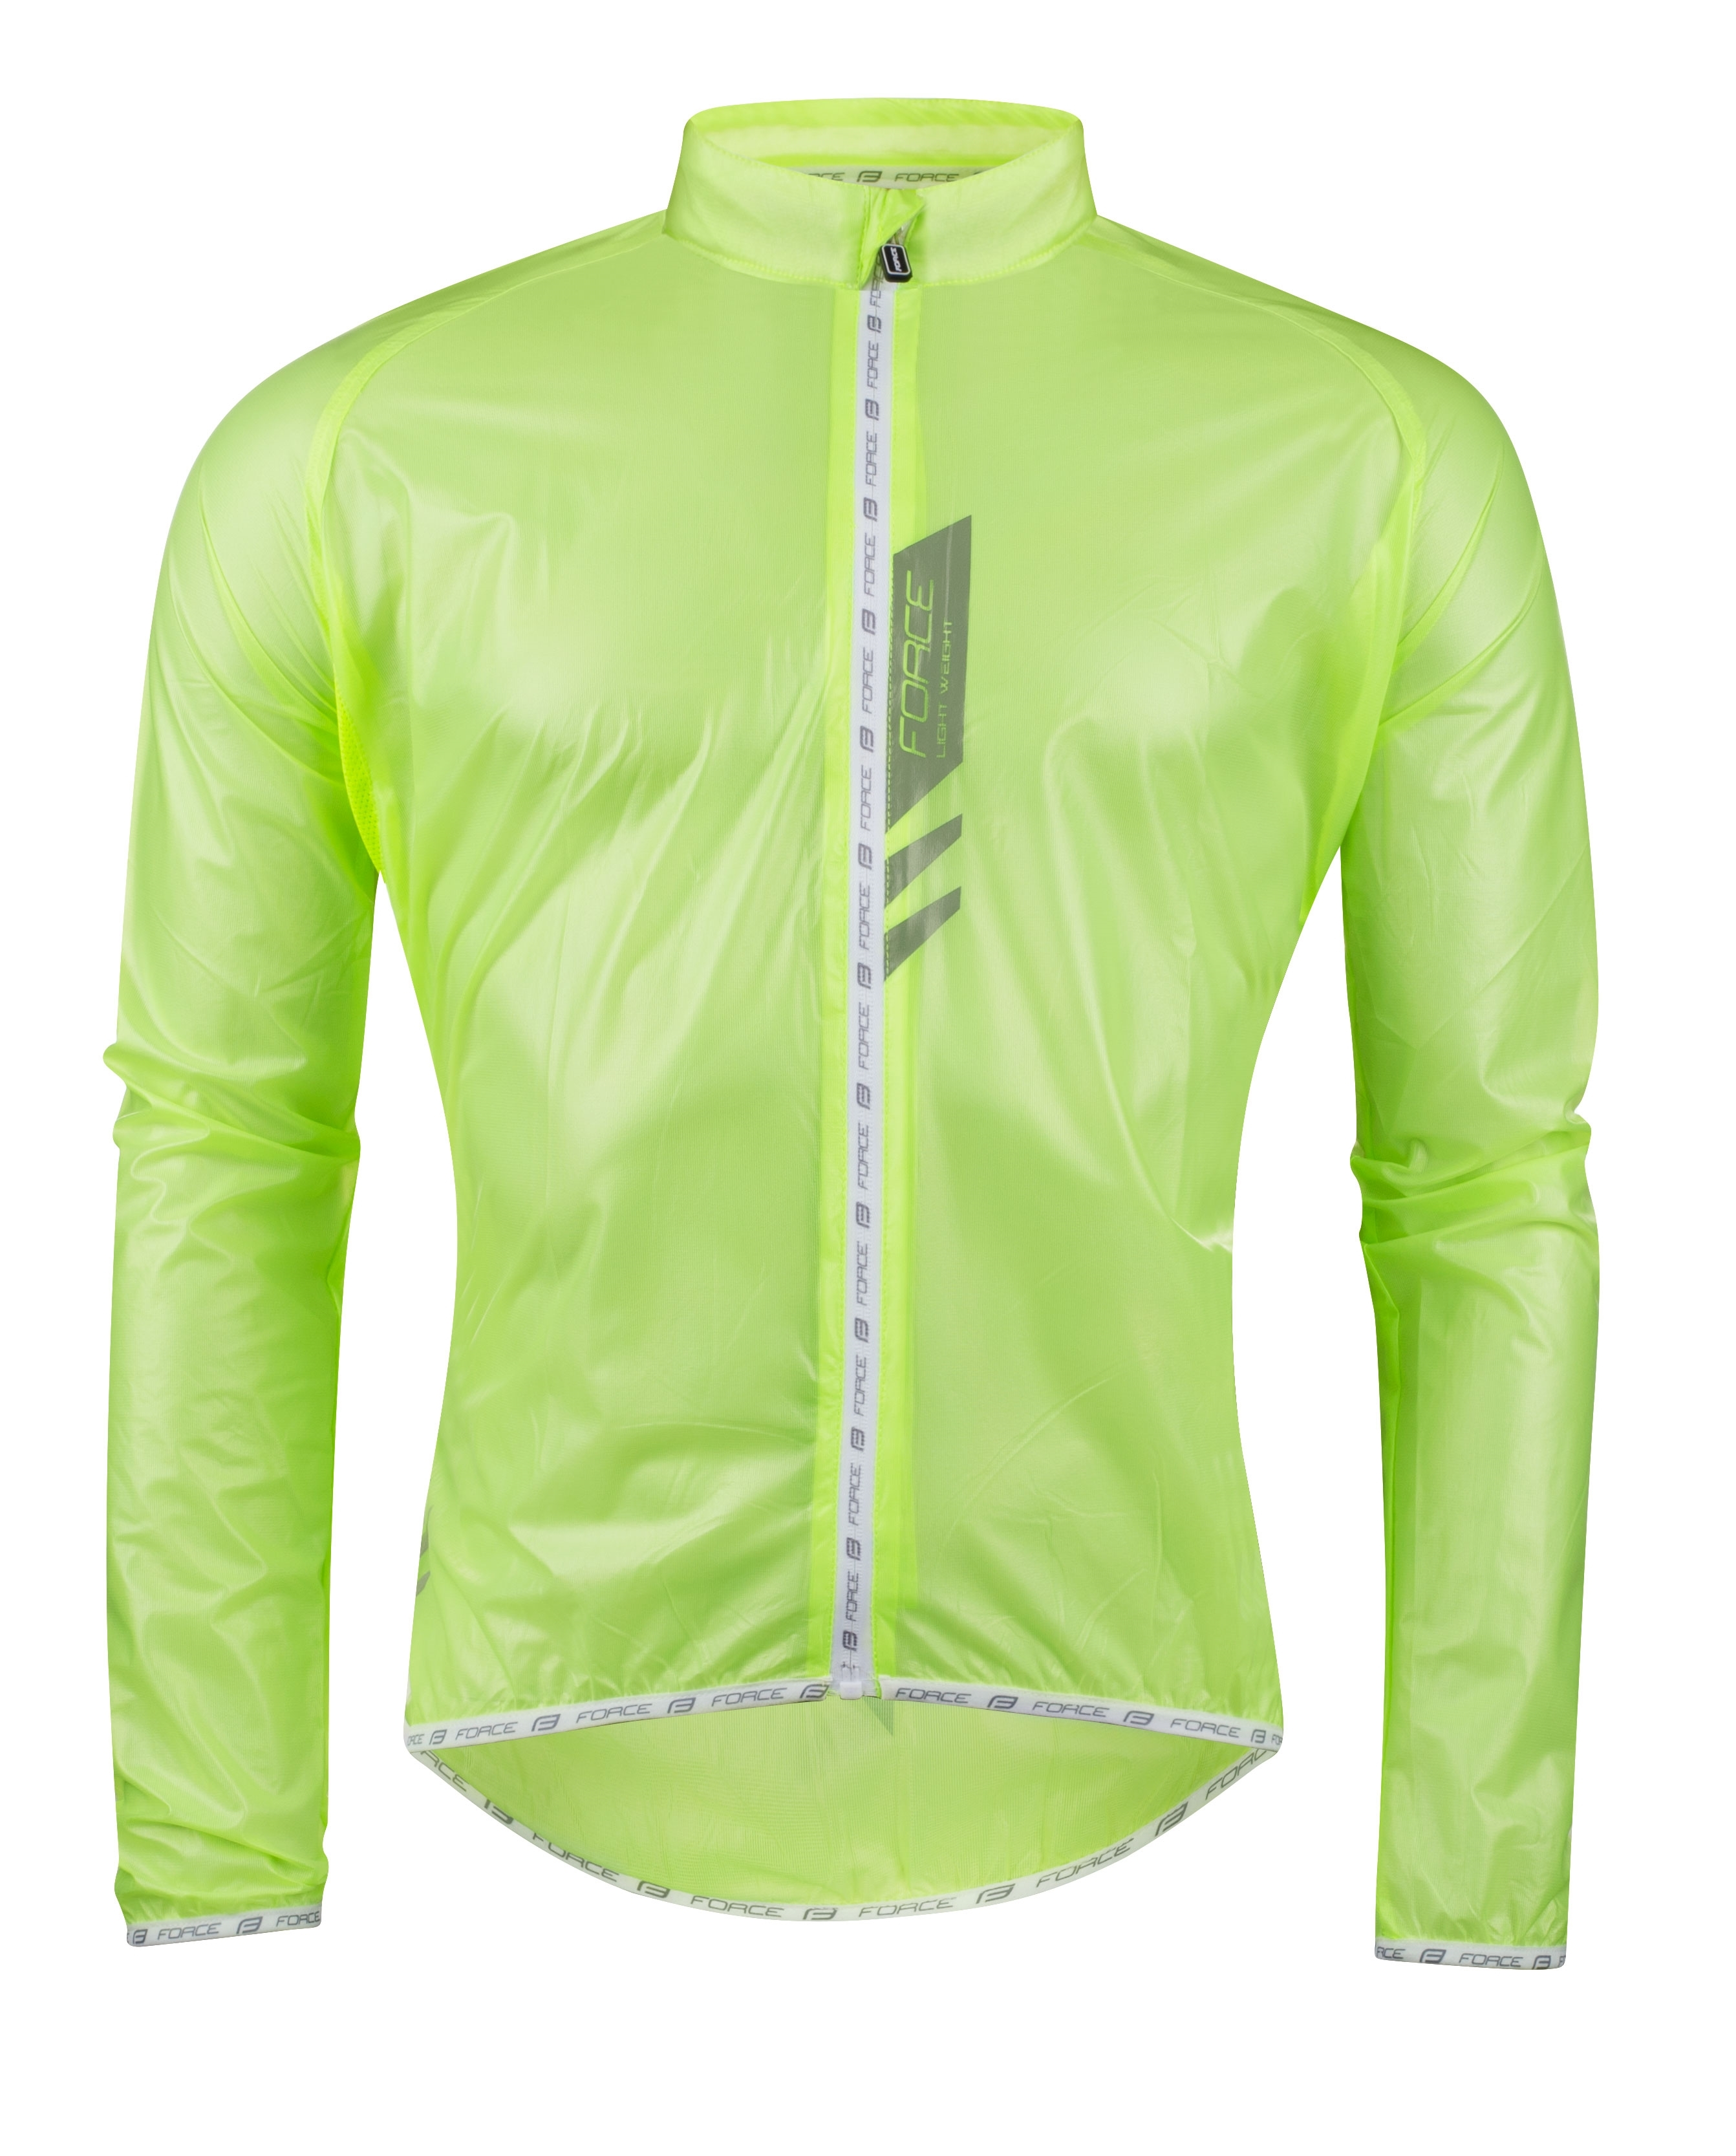 bunda FORCE LIGHTWEIGHT neprofuk fluo SLIM-S